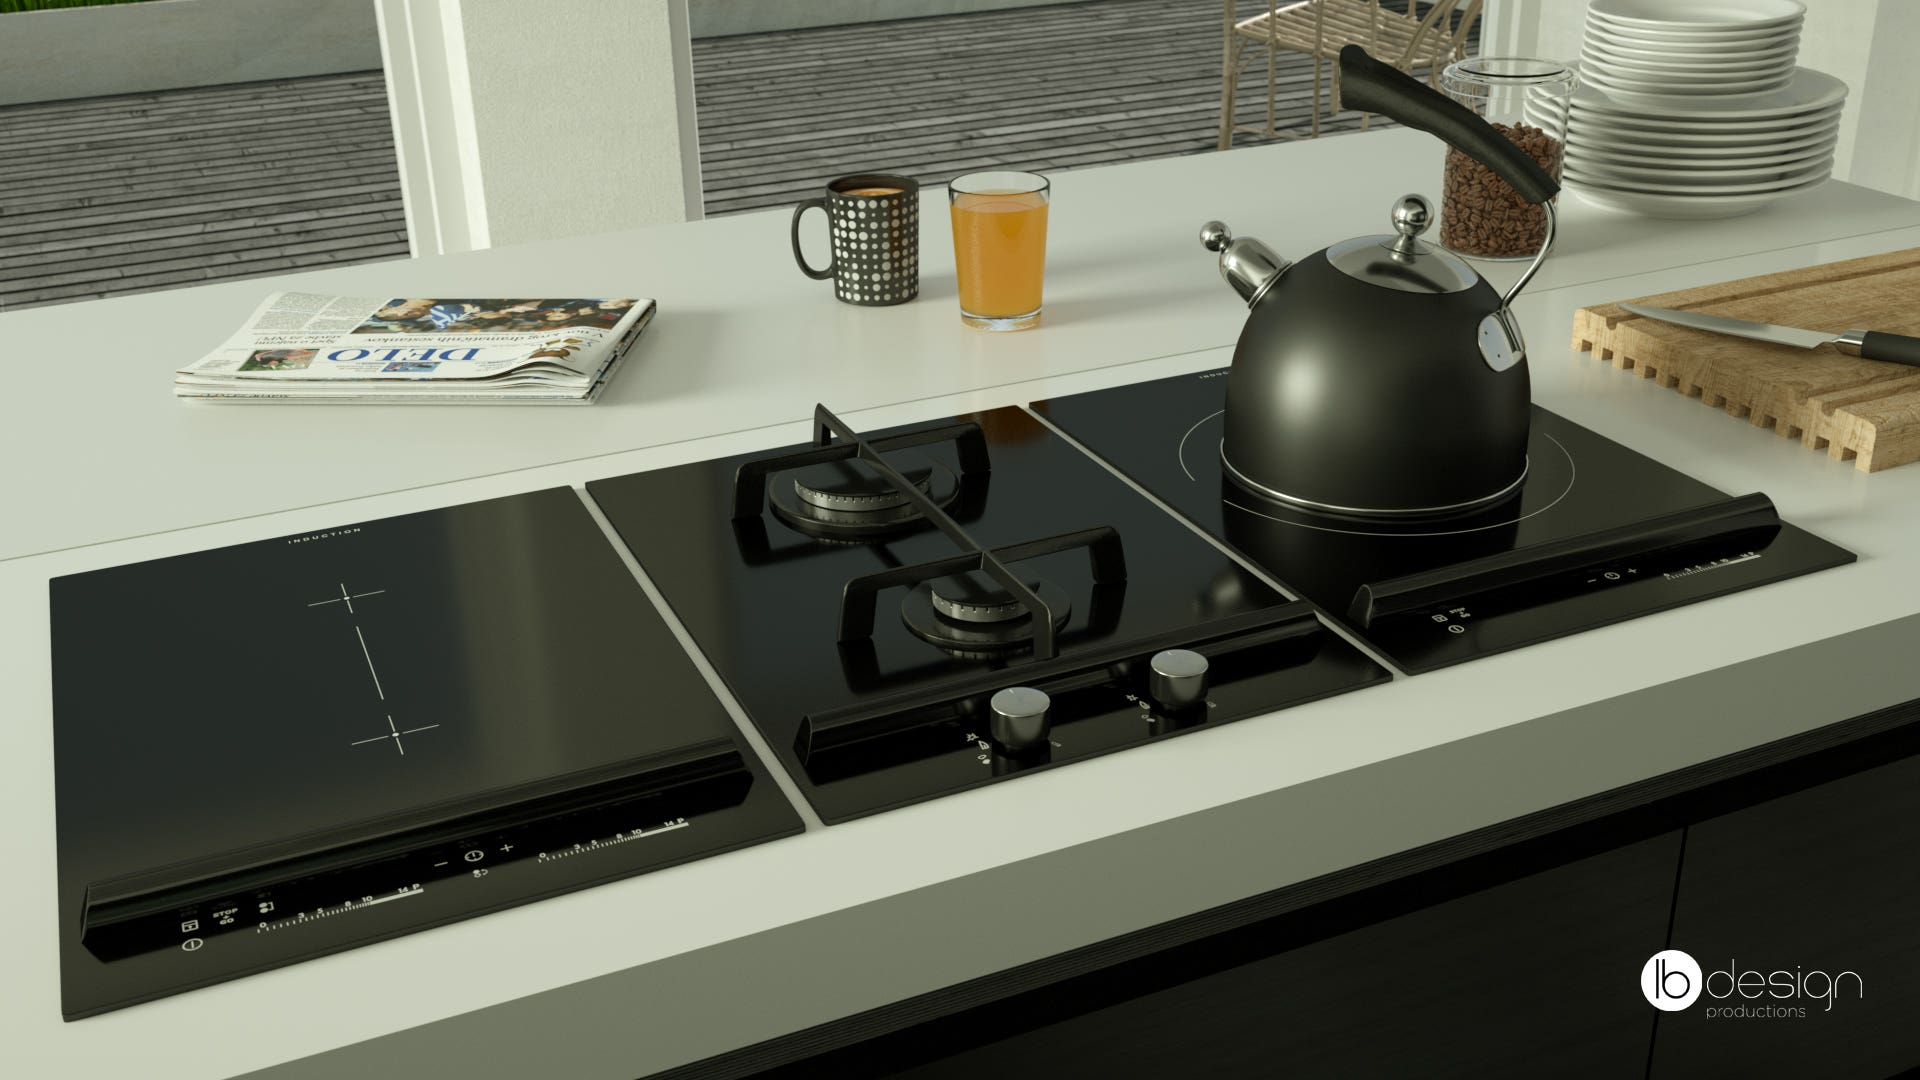 Ceramic stove, kitchen interior